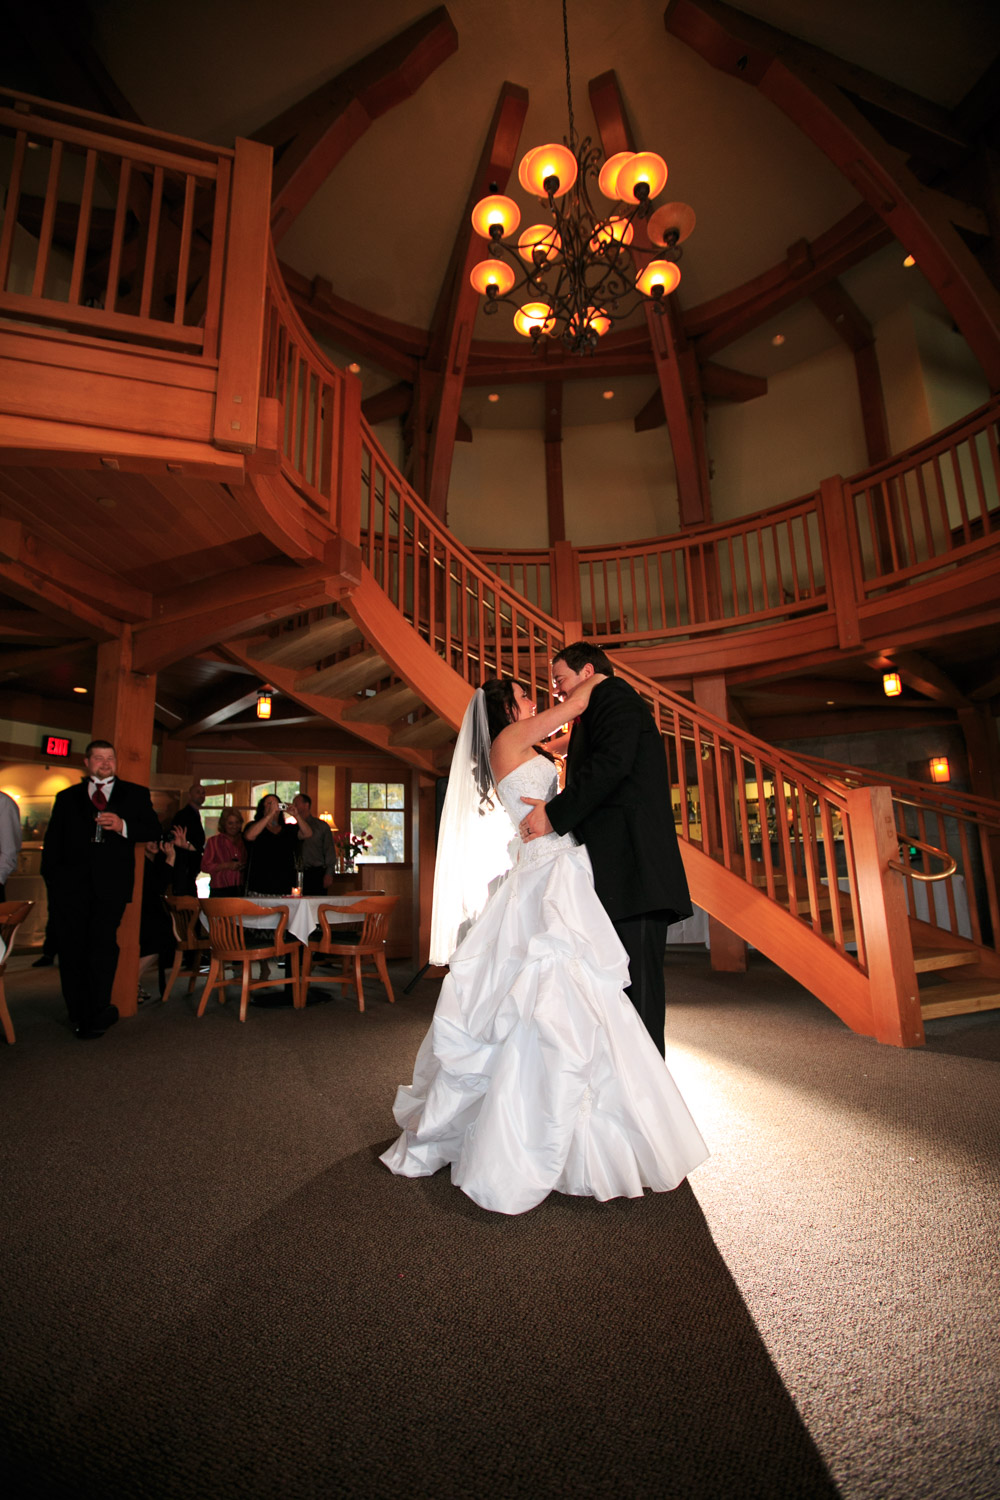 Wedding photos Whittier Alaska13.jpg